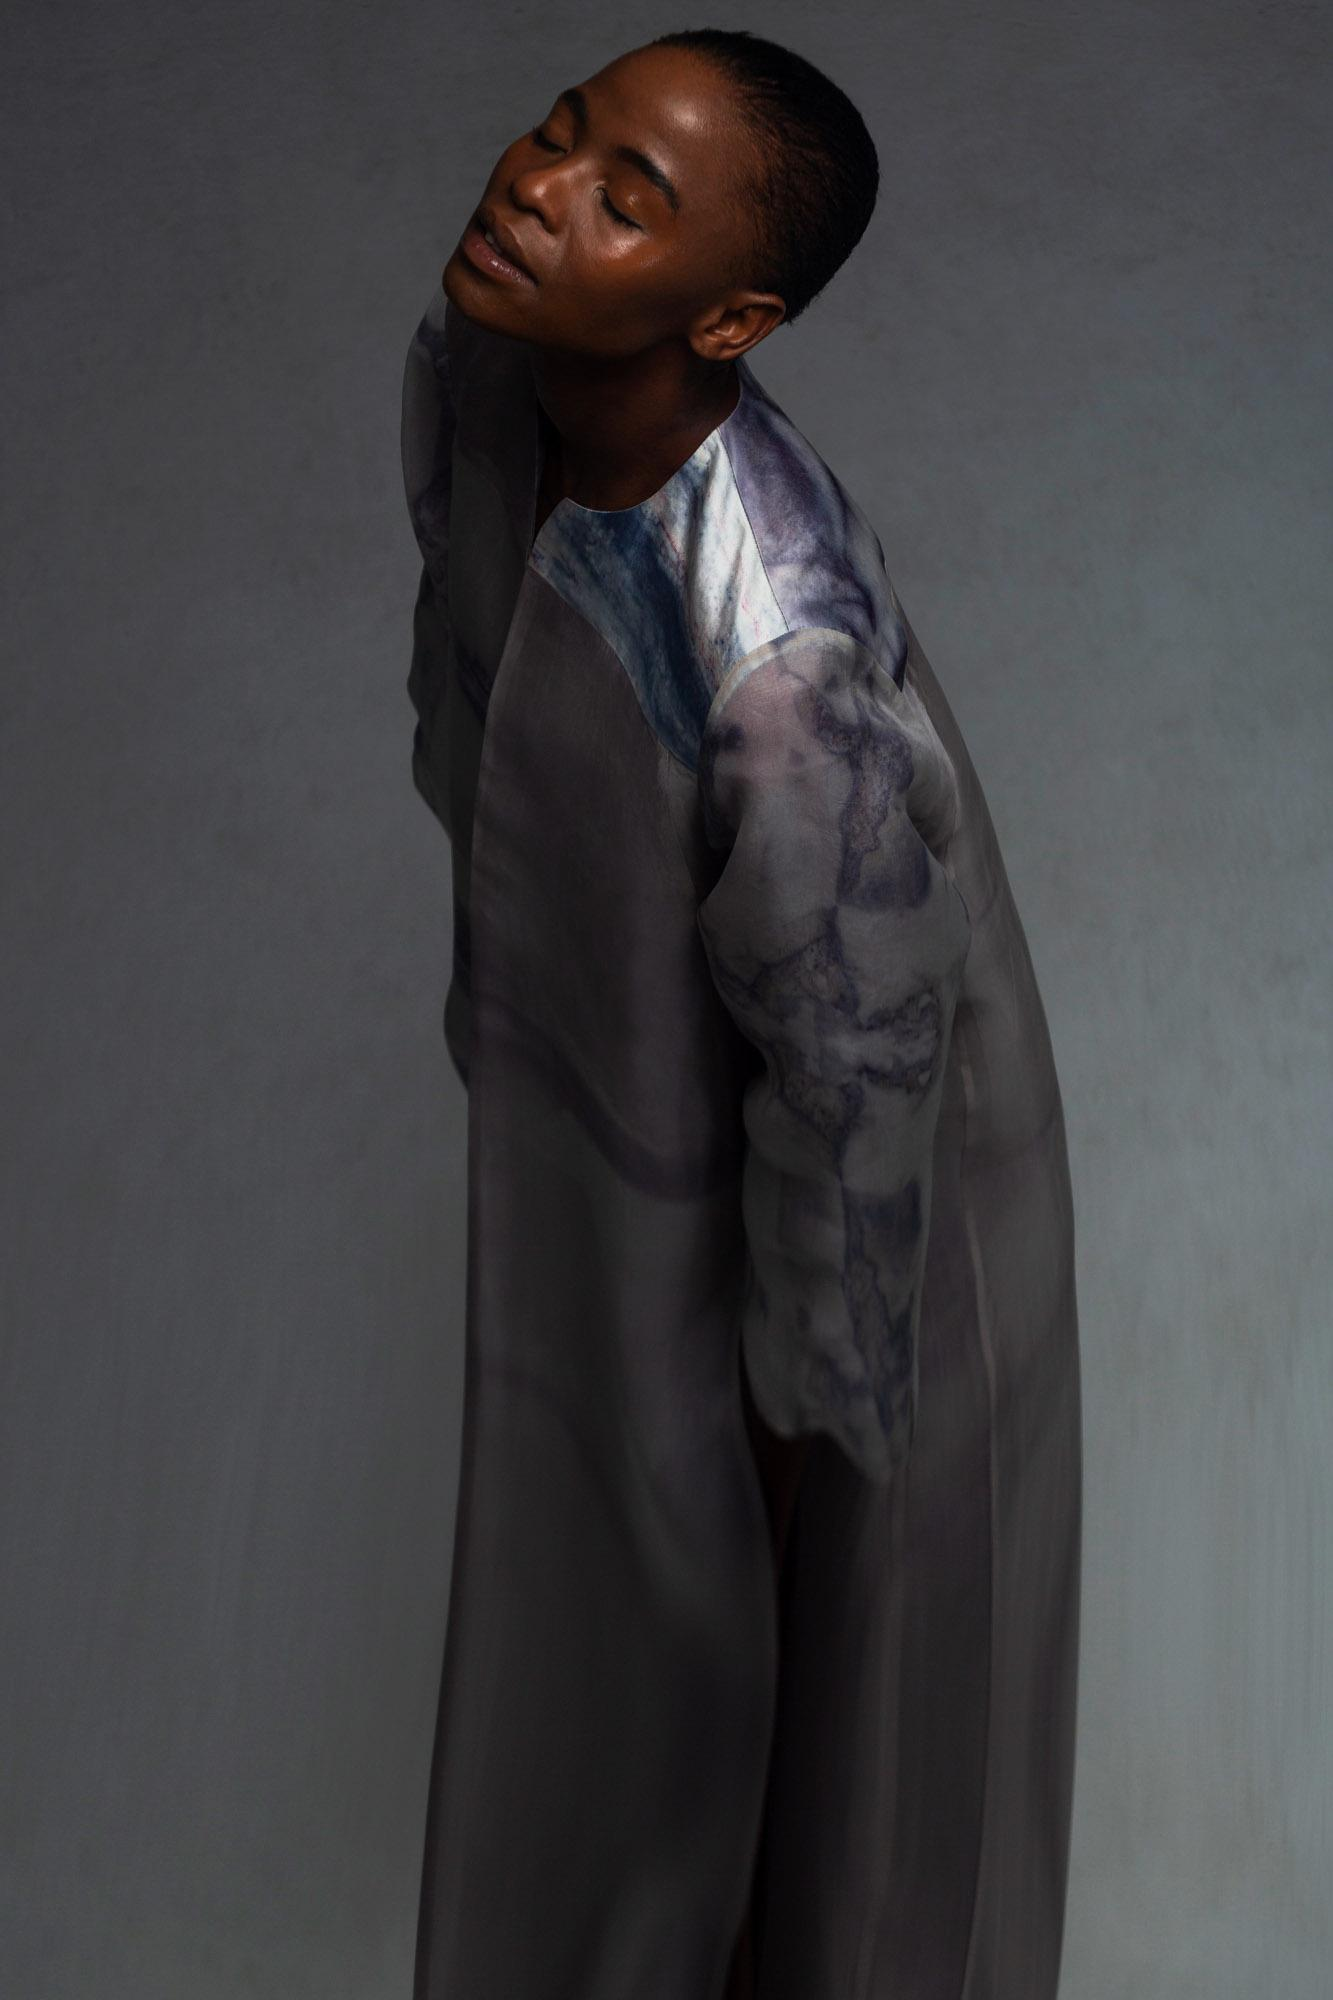 A model wearing a garment dyed with Coelicolor bacterial pigment extract, the result being a marbled effect of pink, purple and blue